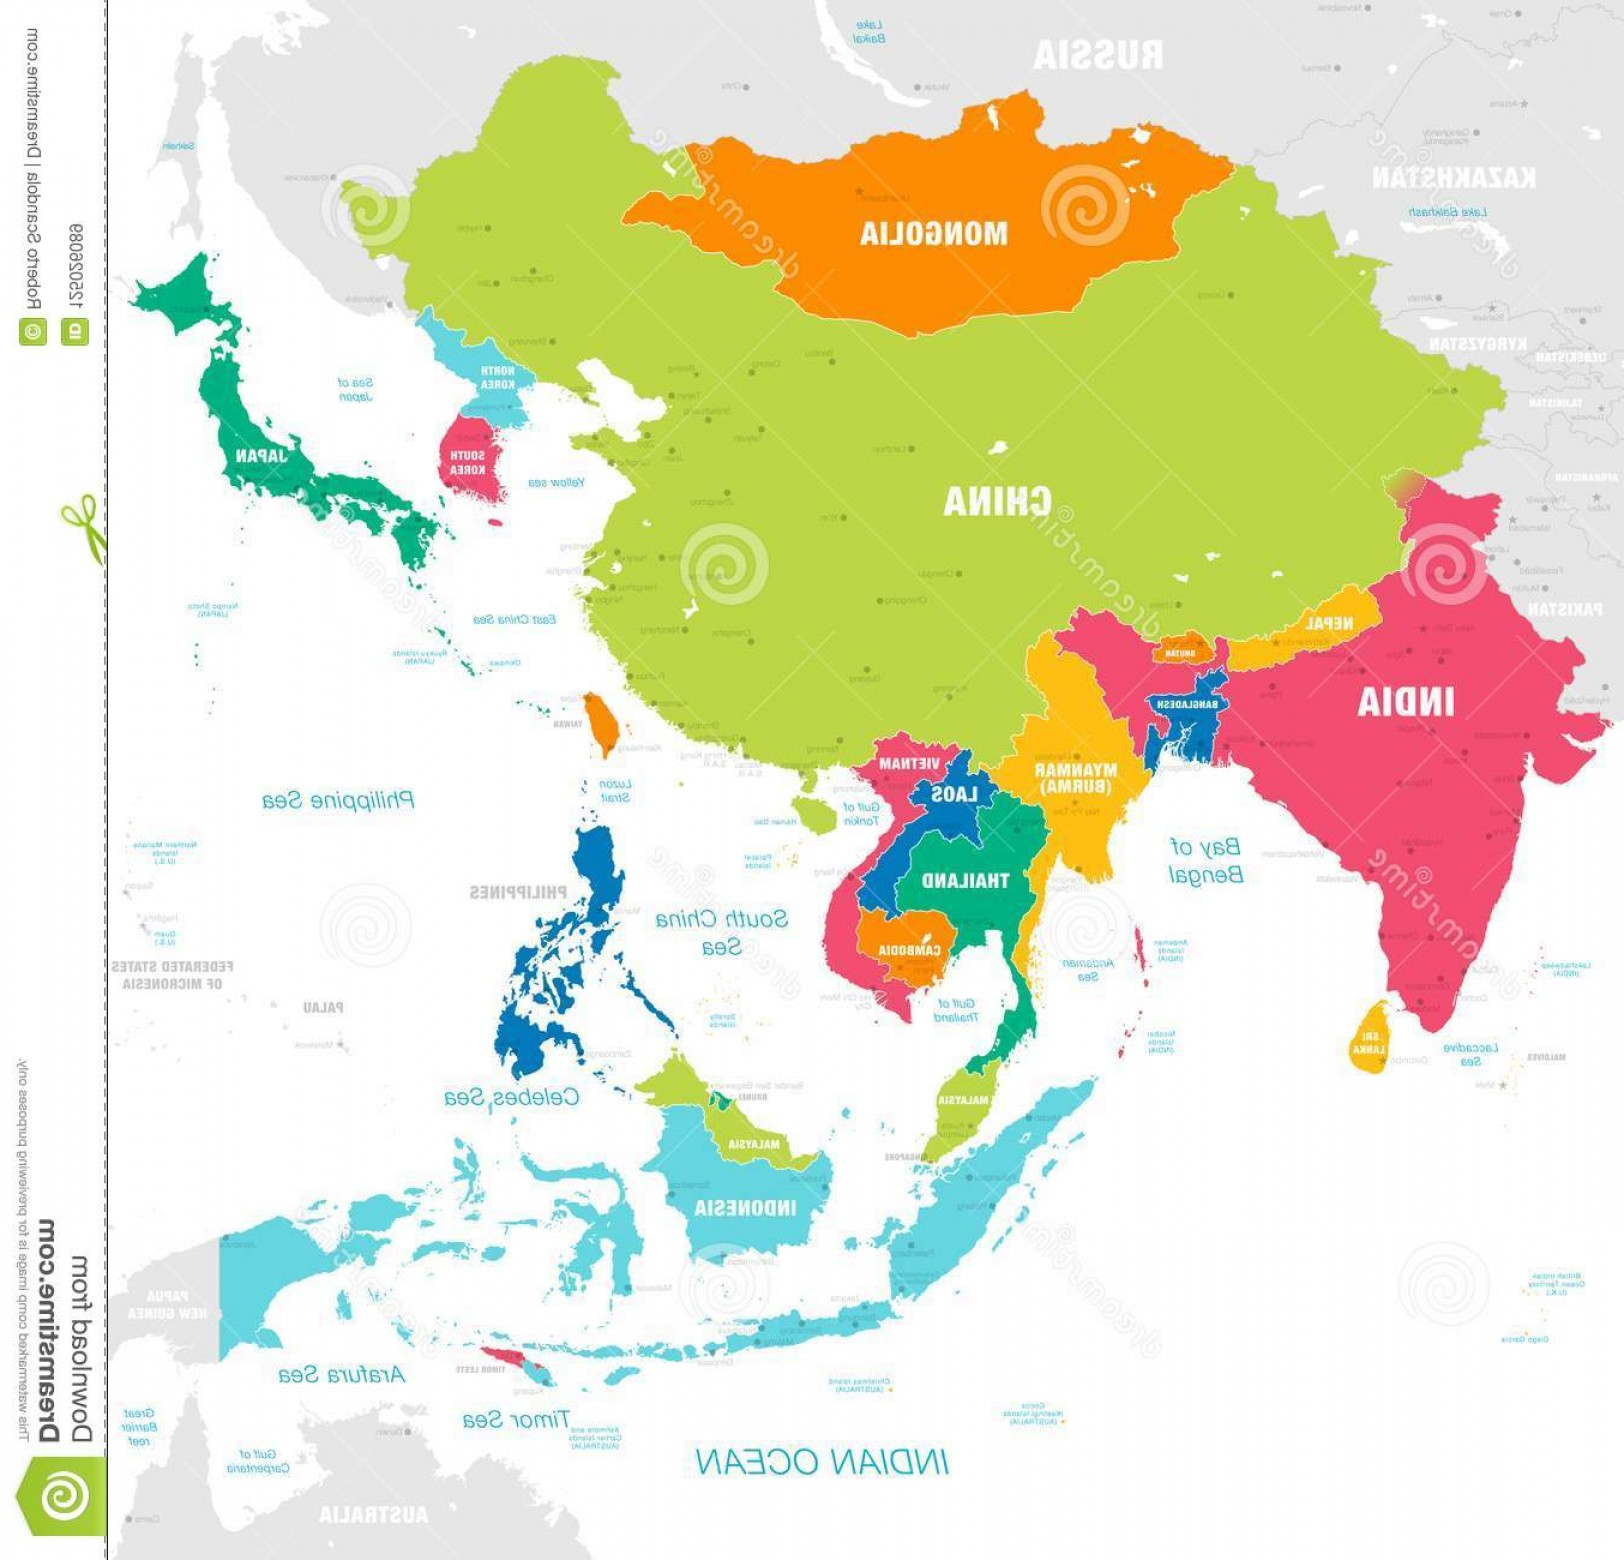 Asia Continent Map Vector: Vector Map East Asia Continent Countries Capitals Main Cities Seas Islands Names Strong Brilliant Colors Palette Image